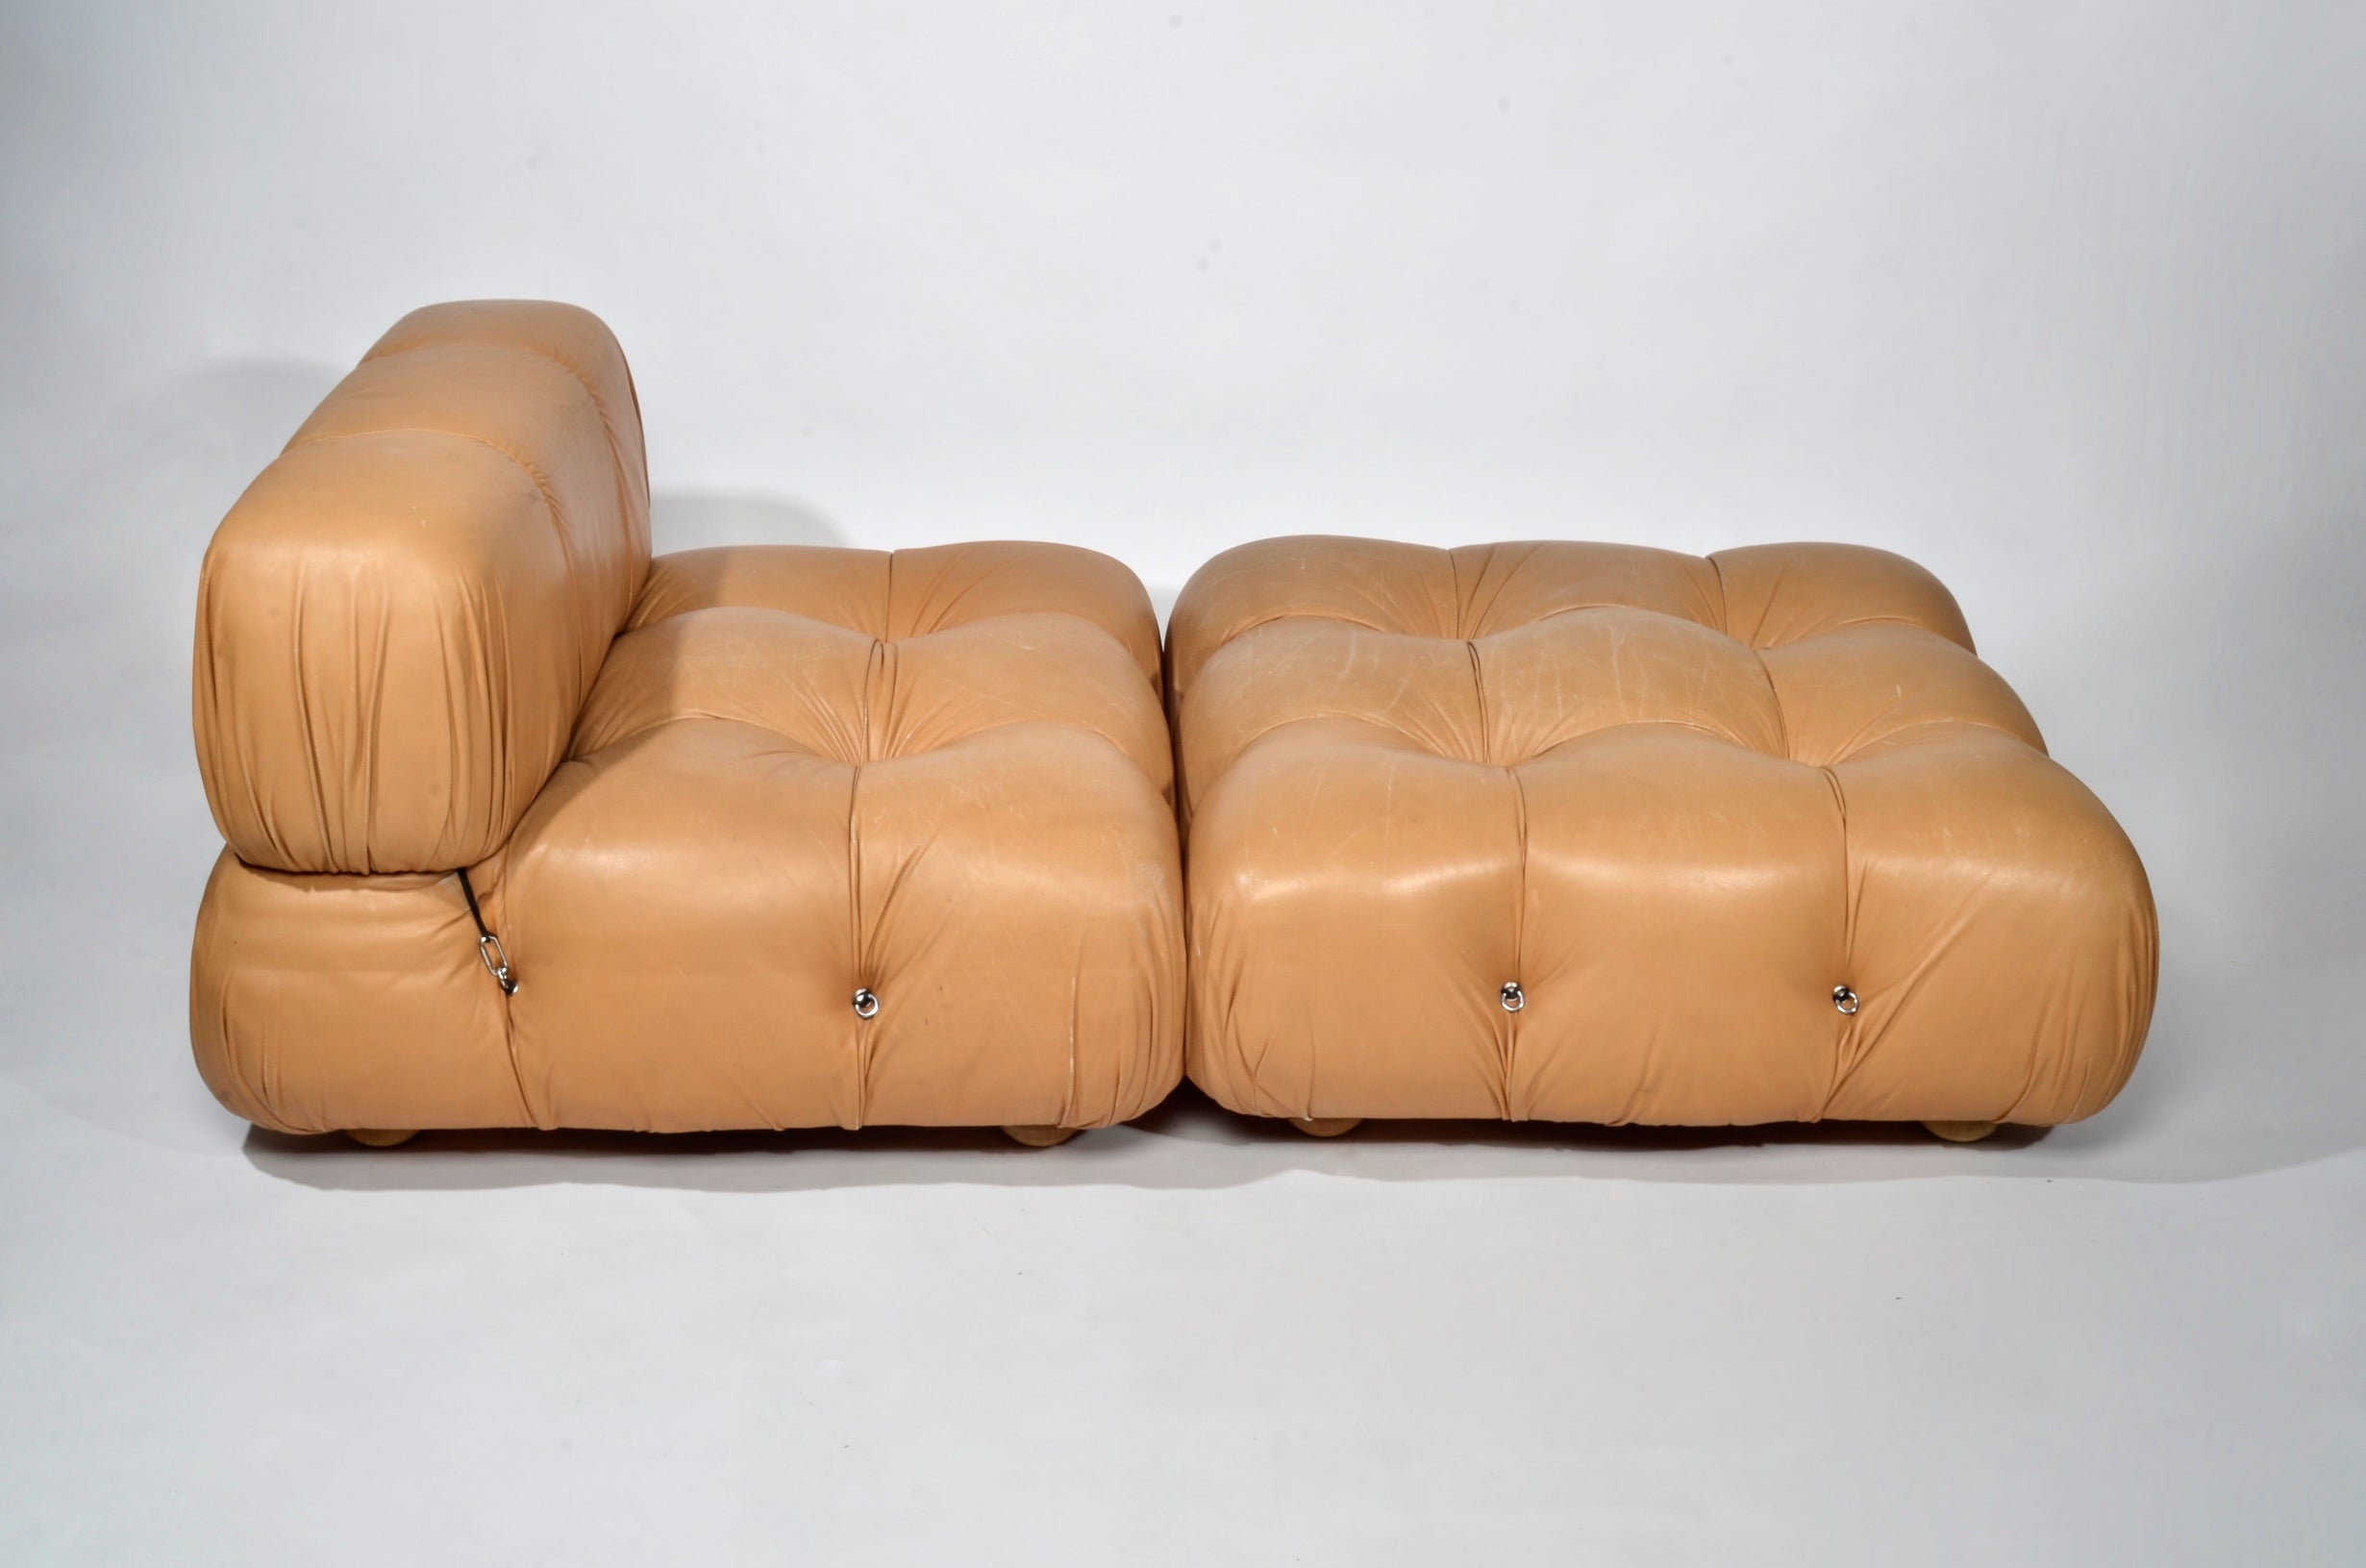 Mario Bellini 'Camaleonda' Lounge Chair and Ottoman, 1973 - The Exchange Int